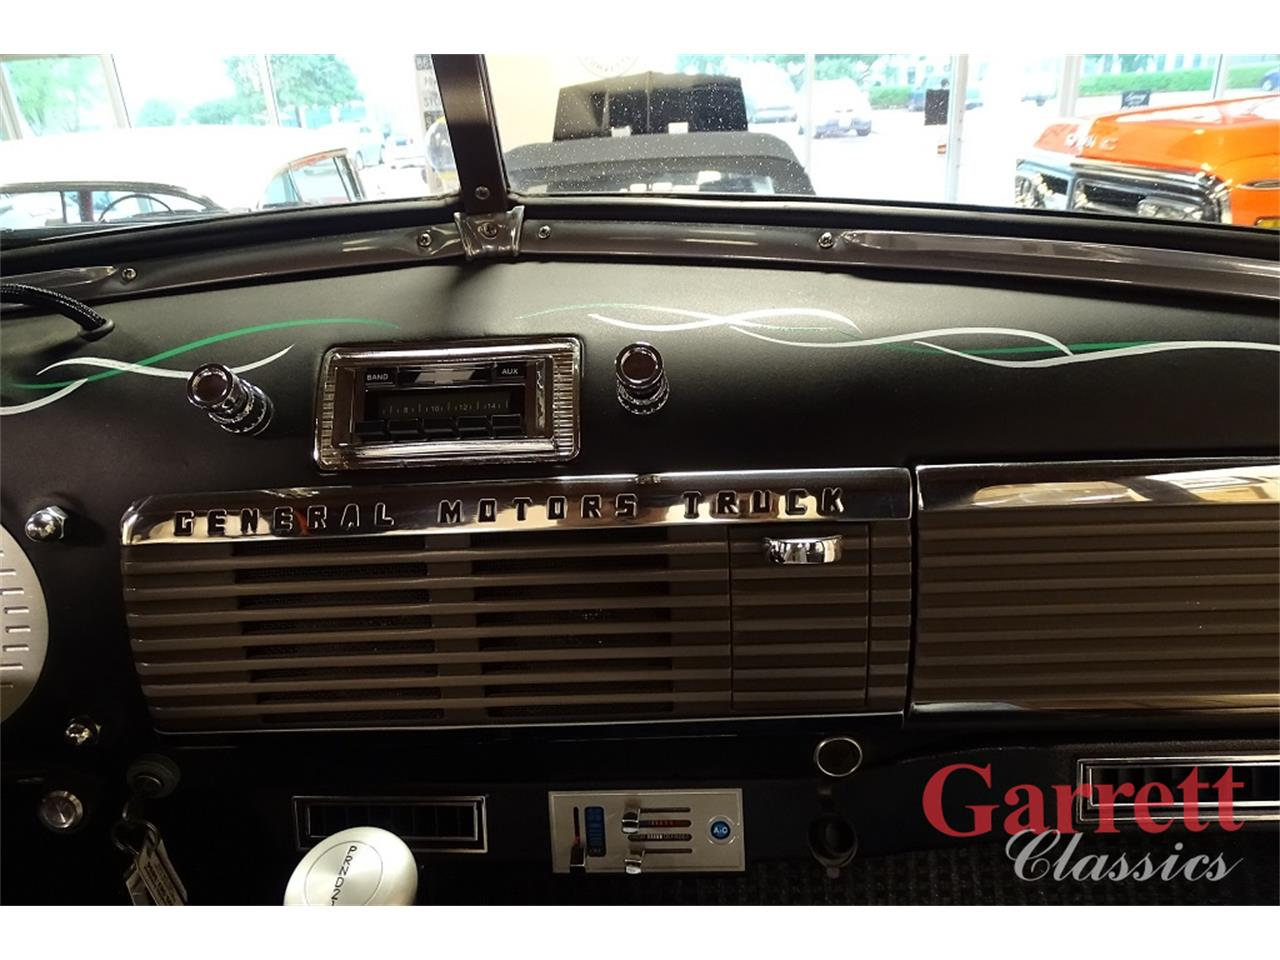 Large Picture of Classic 1949 3100 located in TEXAS (TX) - $30,000.00 Offered by Garrett Classics - PXAC